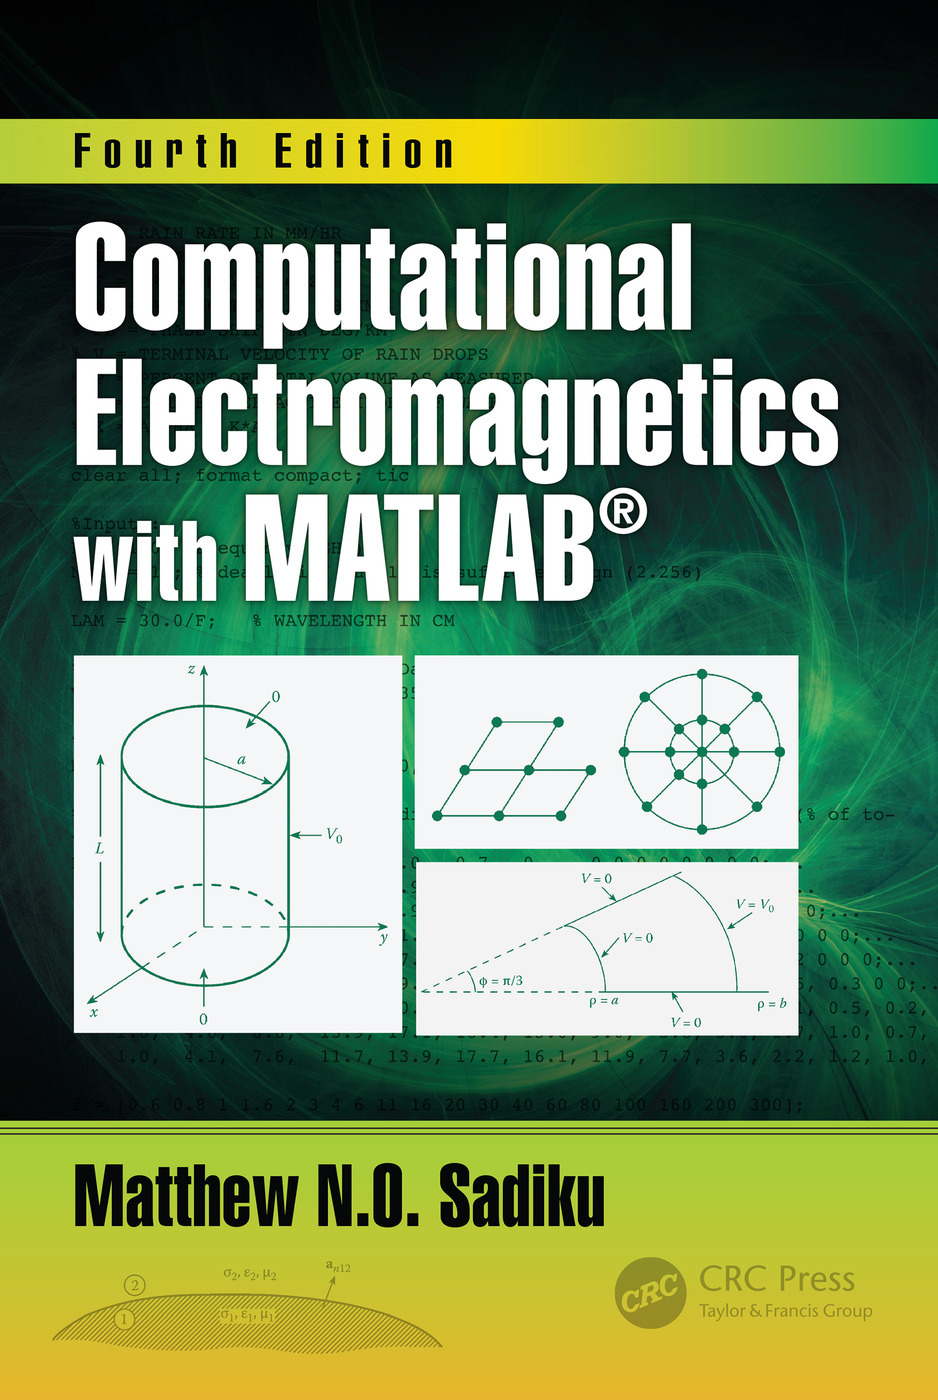 Computational Electromagnetics With Matlab Fourth Edition 4th Editi